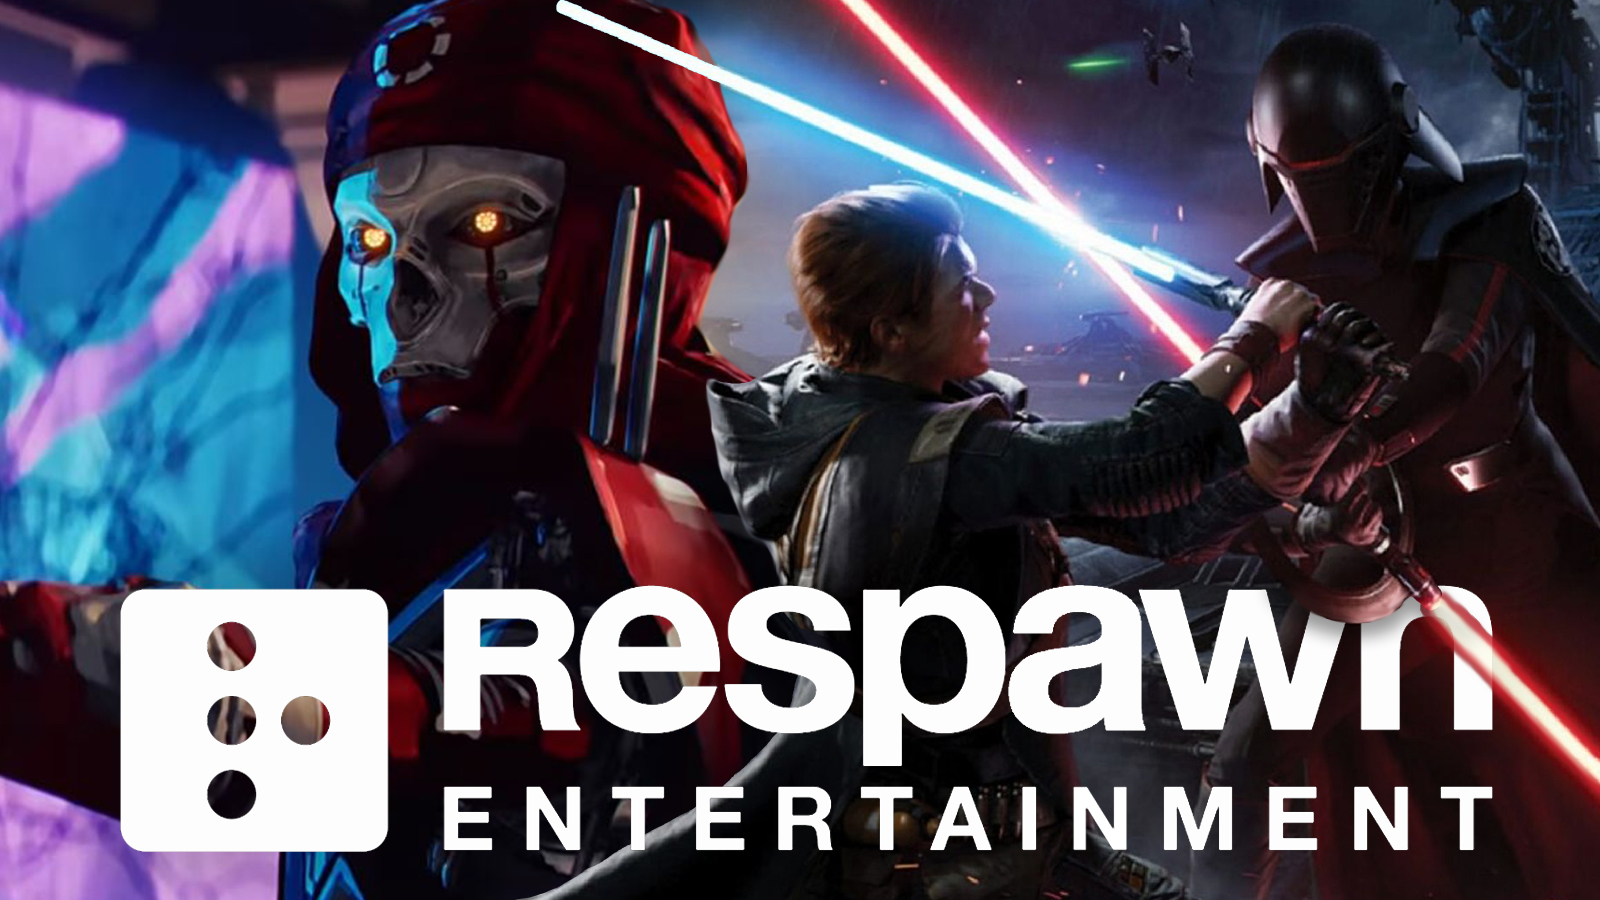 Revenant from Apex Legends and Cal Ketsis from Star Wars Jedi: Fallen Order above Respawn Entertainment.